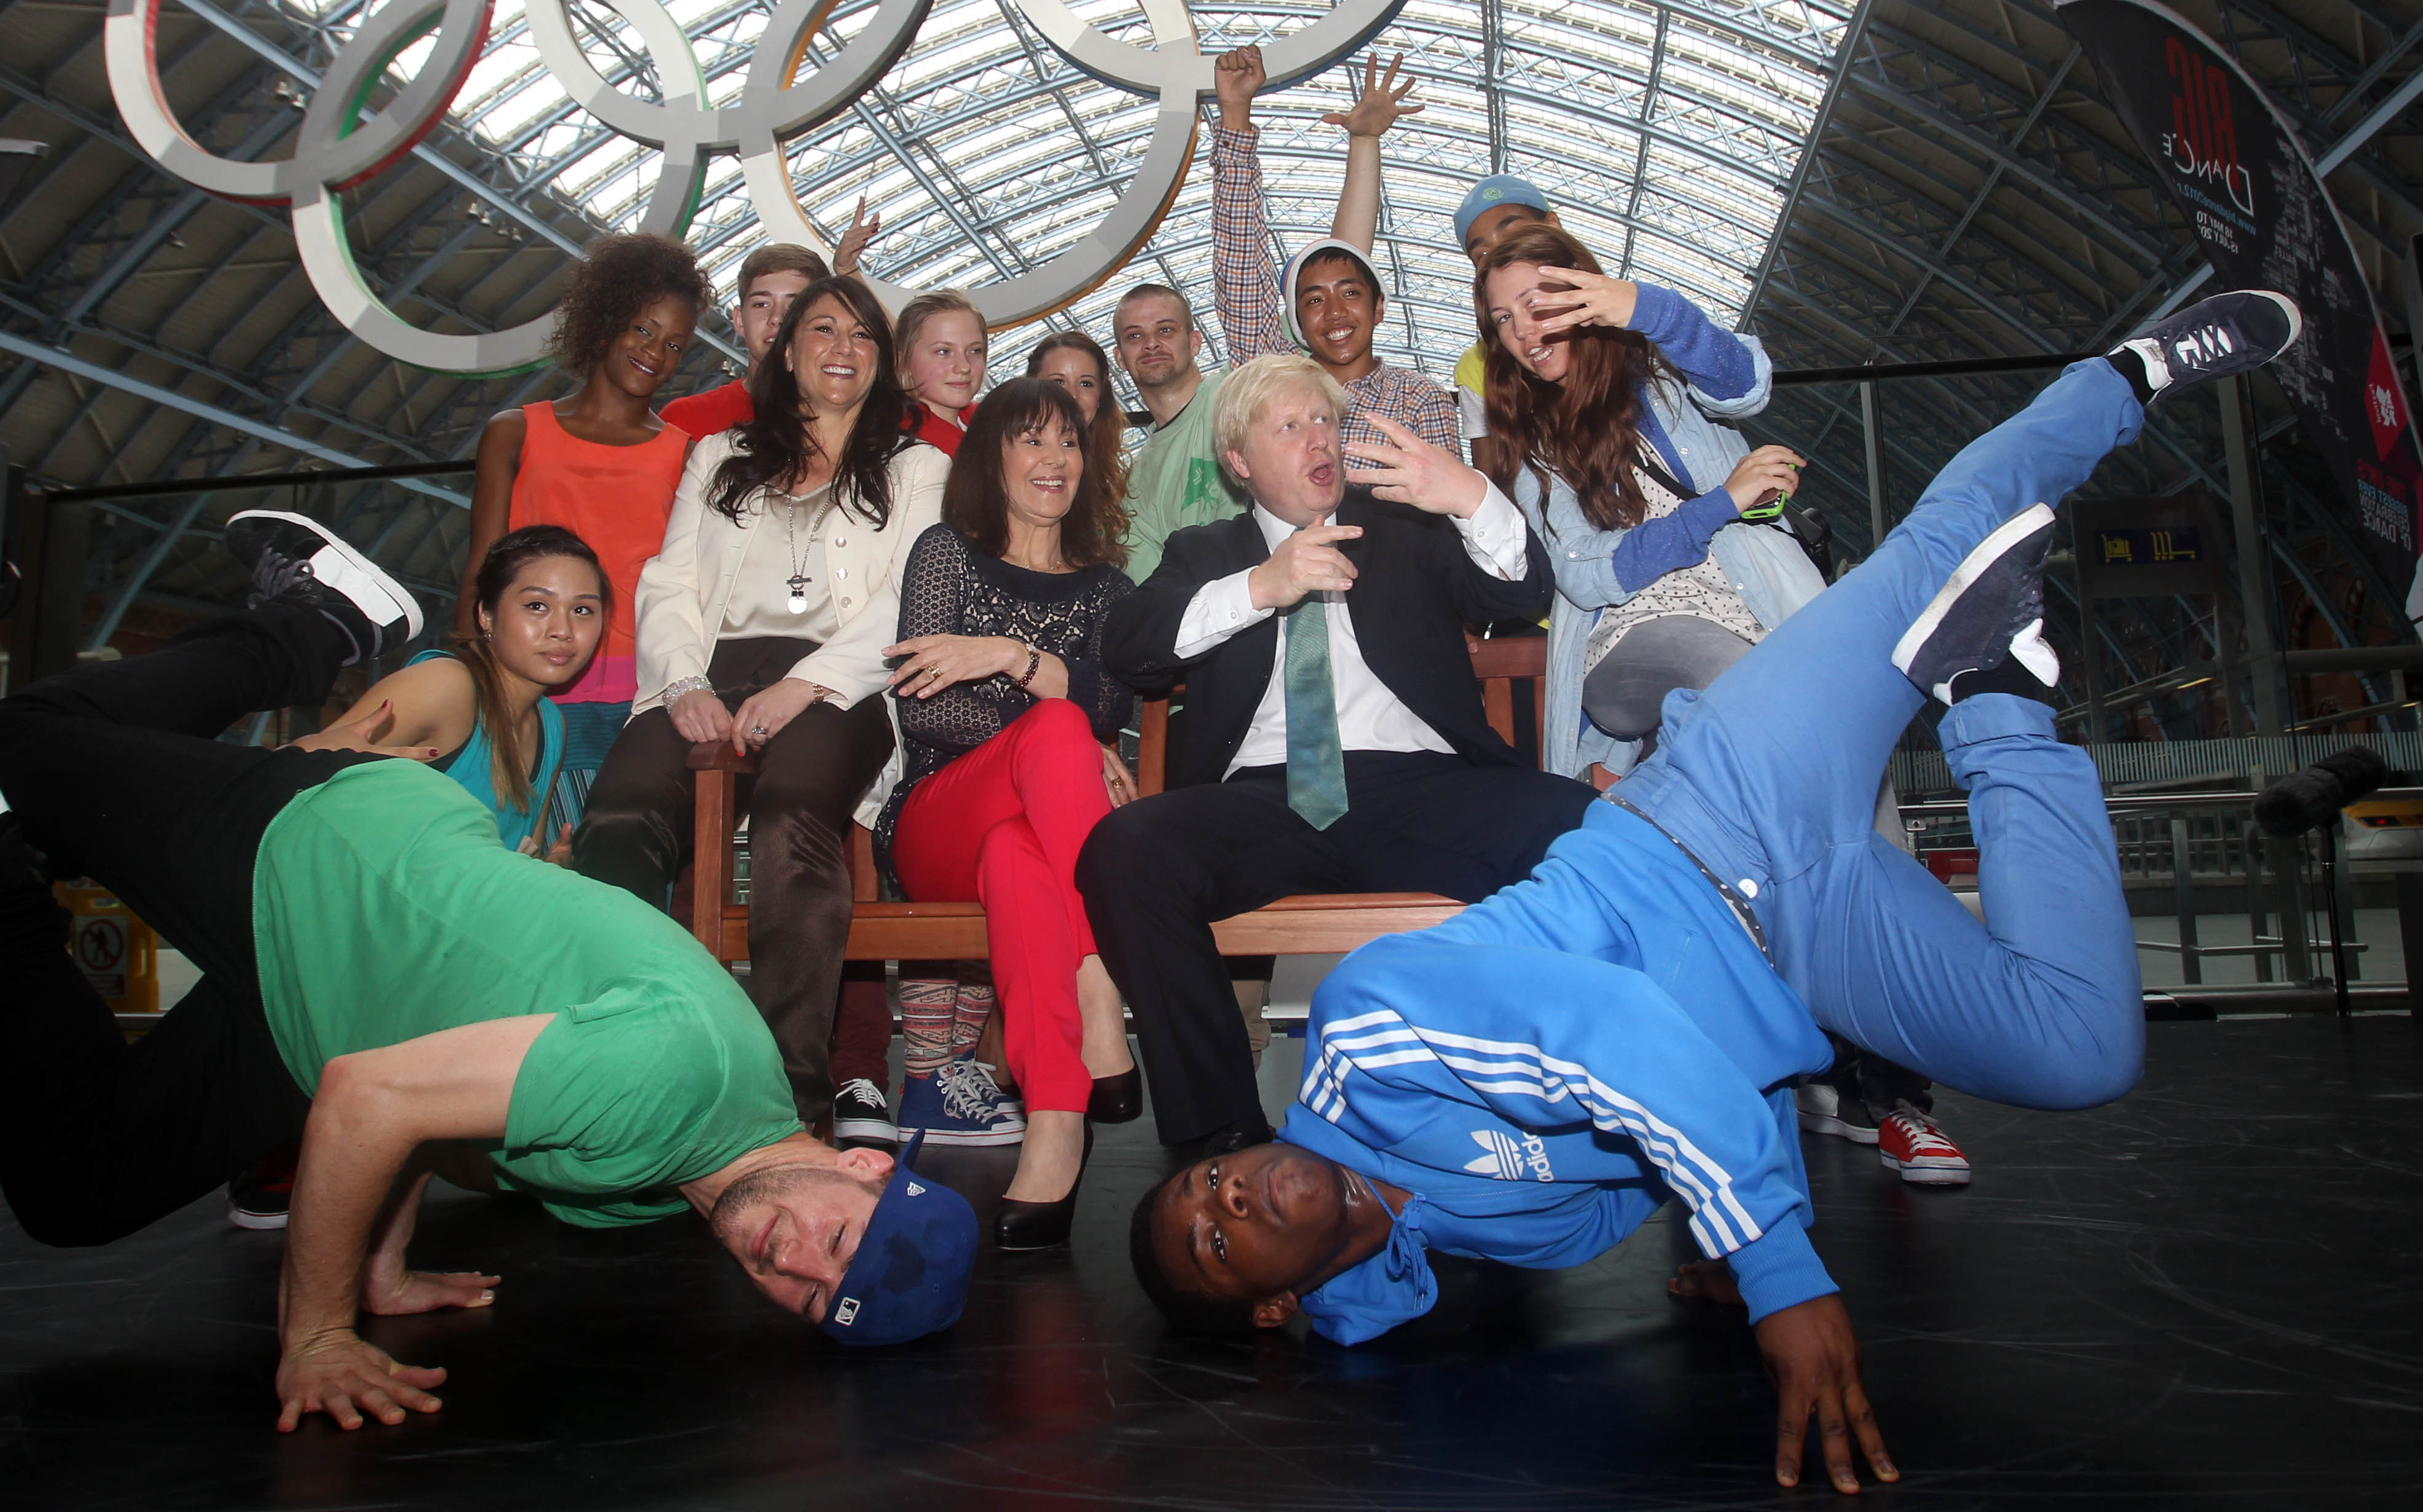 Mayor of London Boris Johnson and Arlene Phillips with a dance group at St Pancras International Station during the launch of Big Dance 2012.